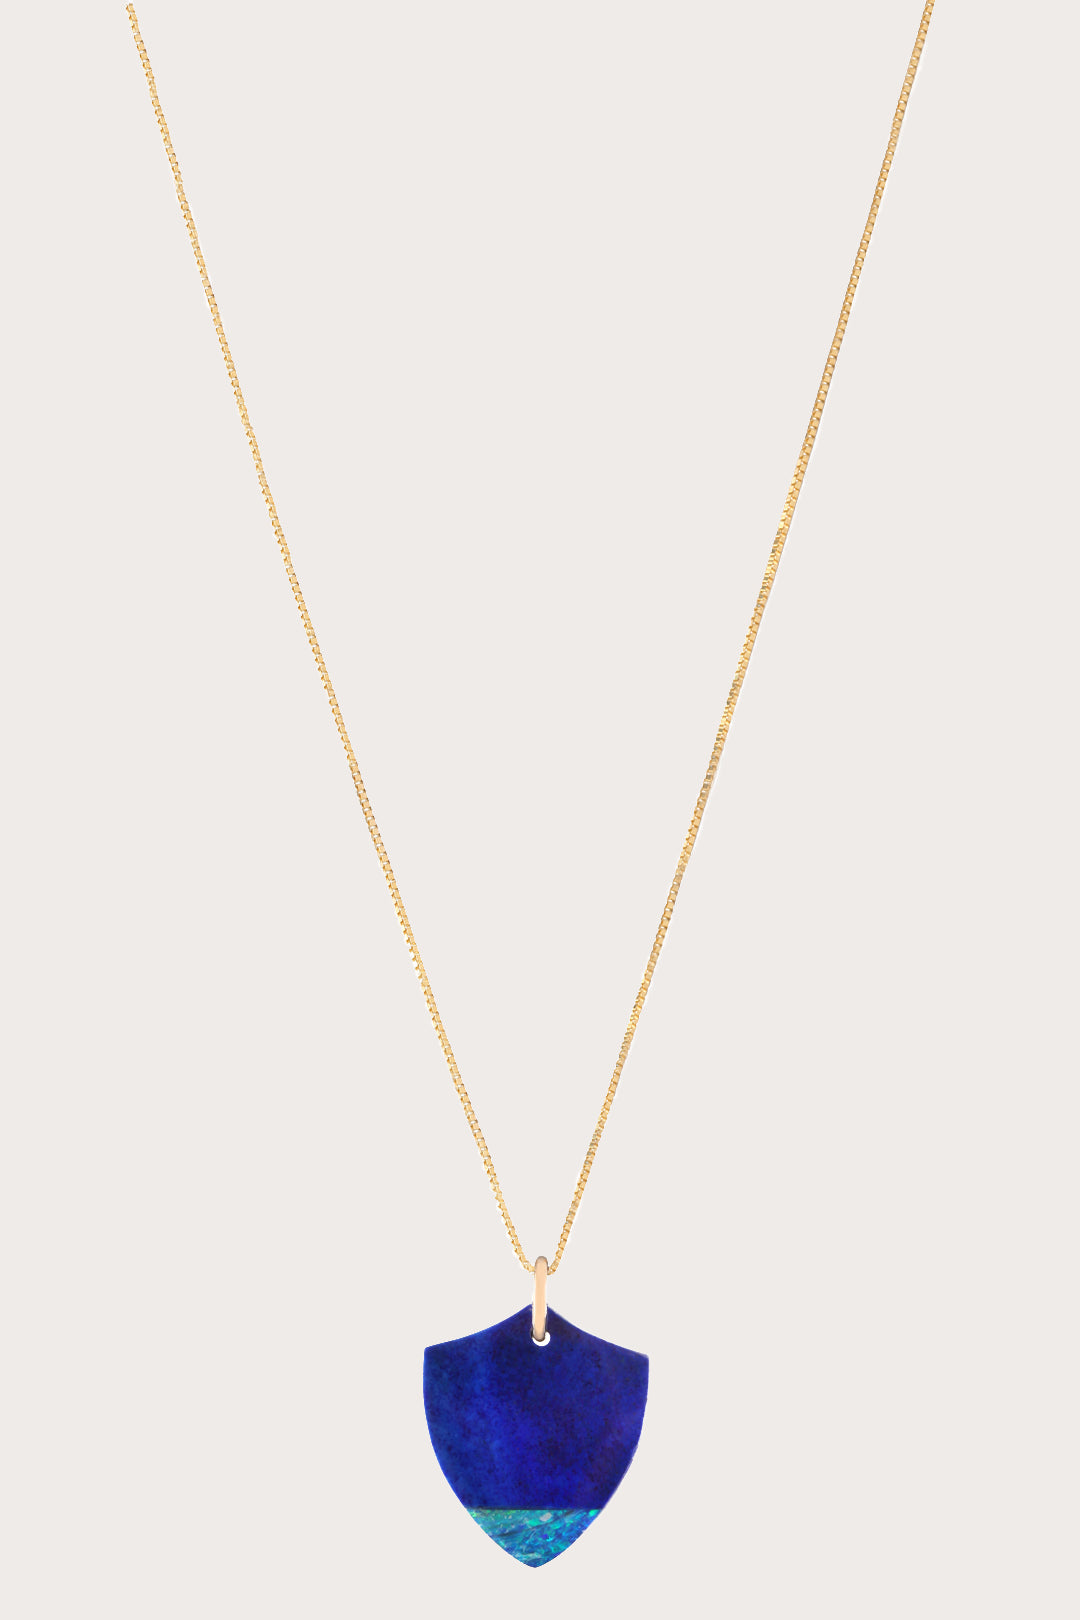 Clark Heldman - Night Ocean Crest Medium necklace